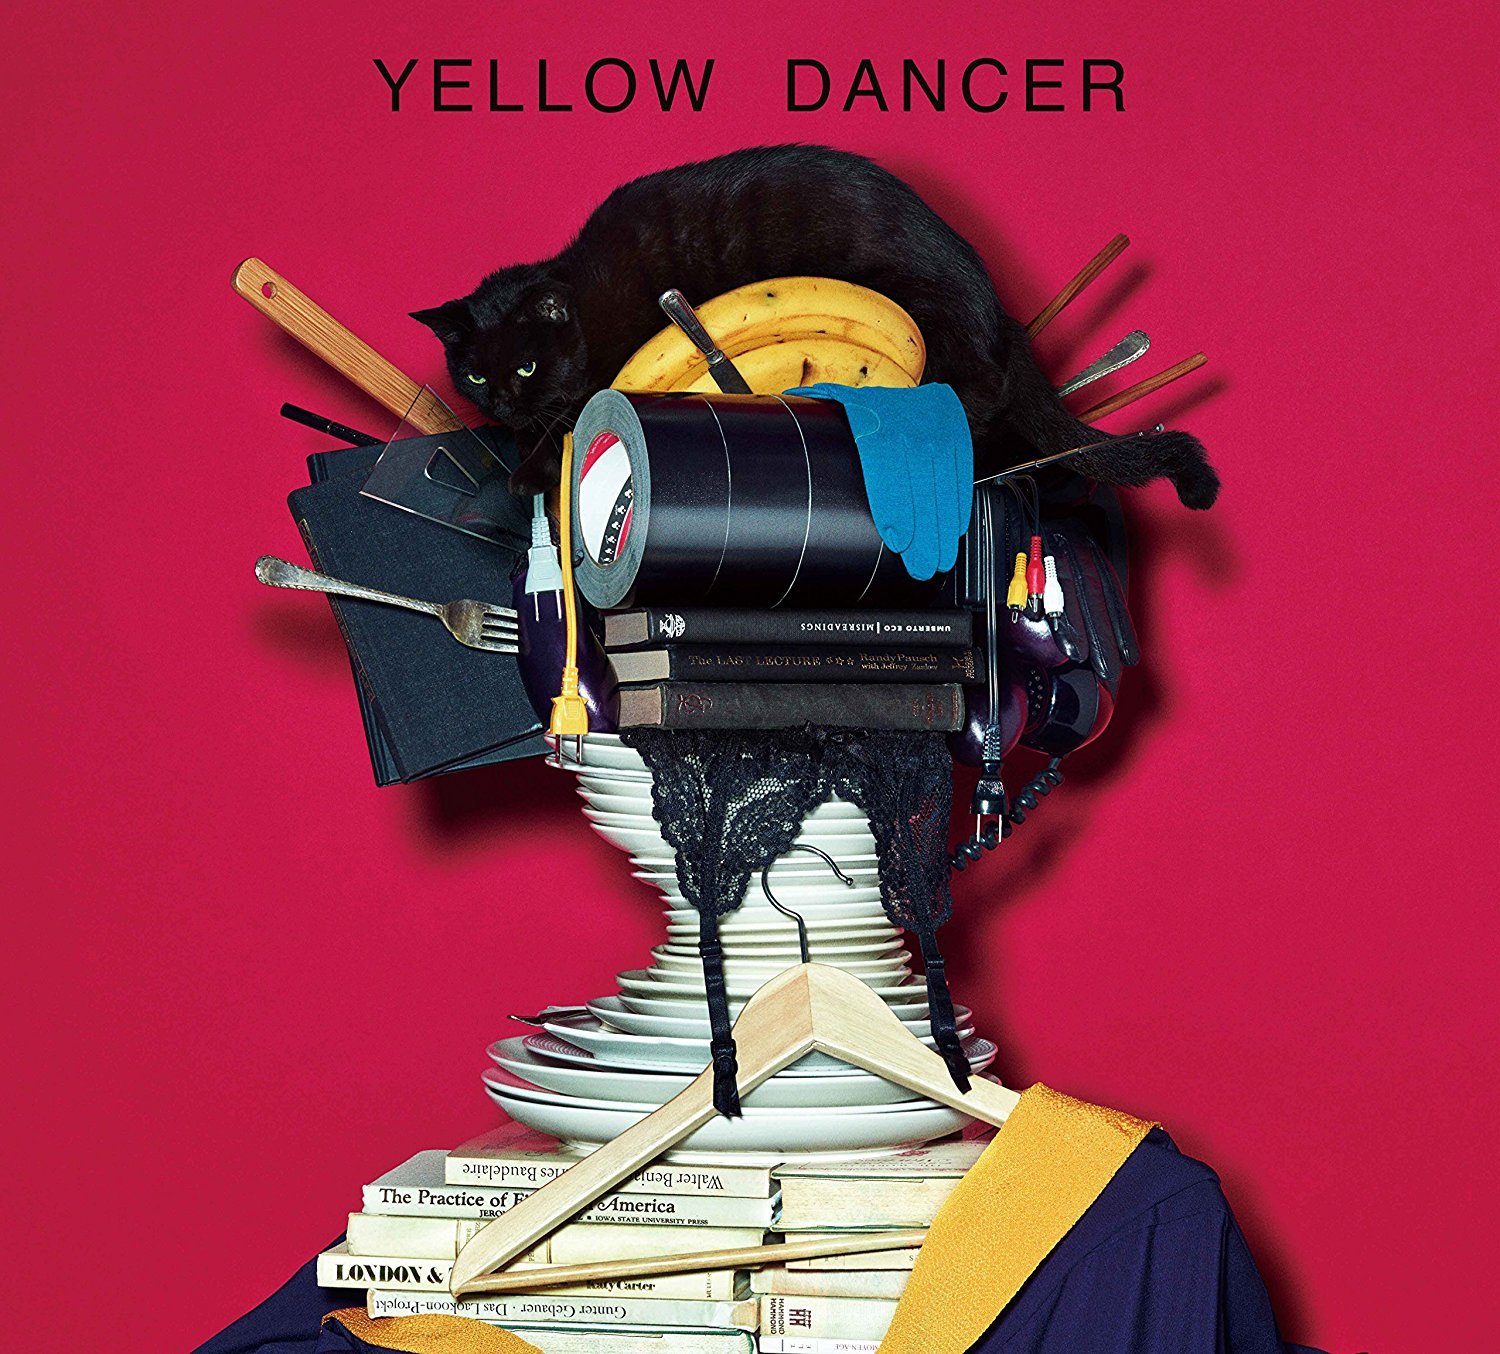 星野源 YELLOW DANCER